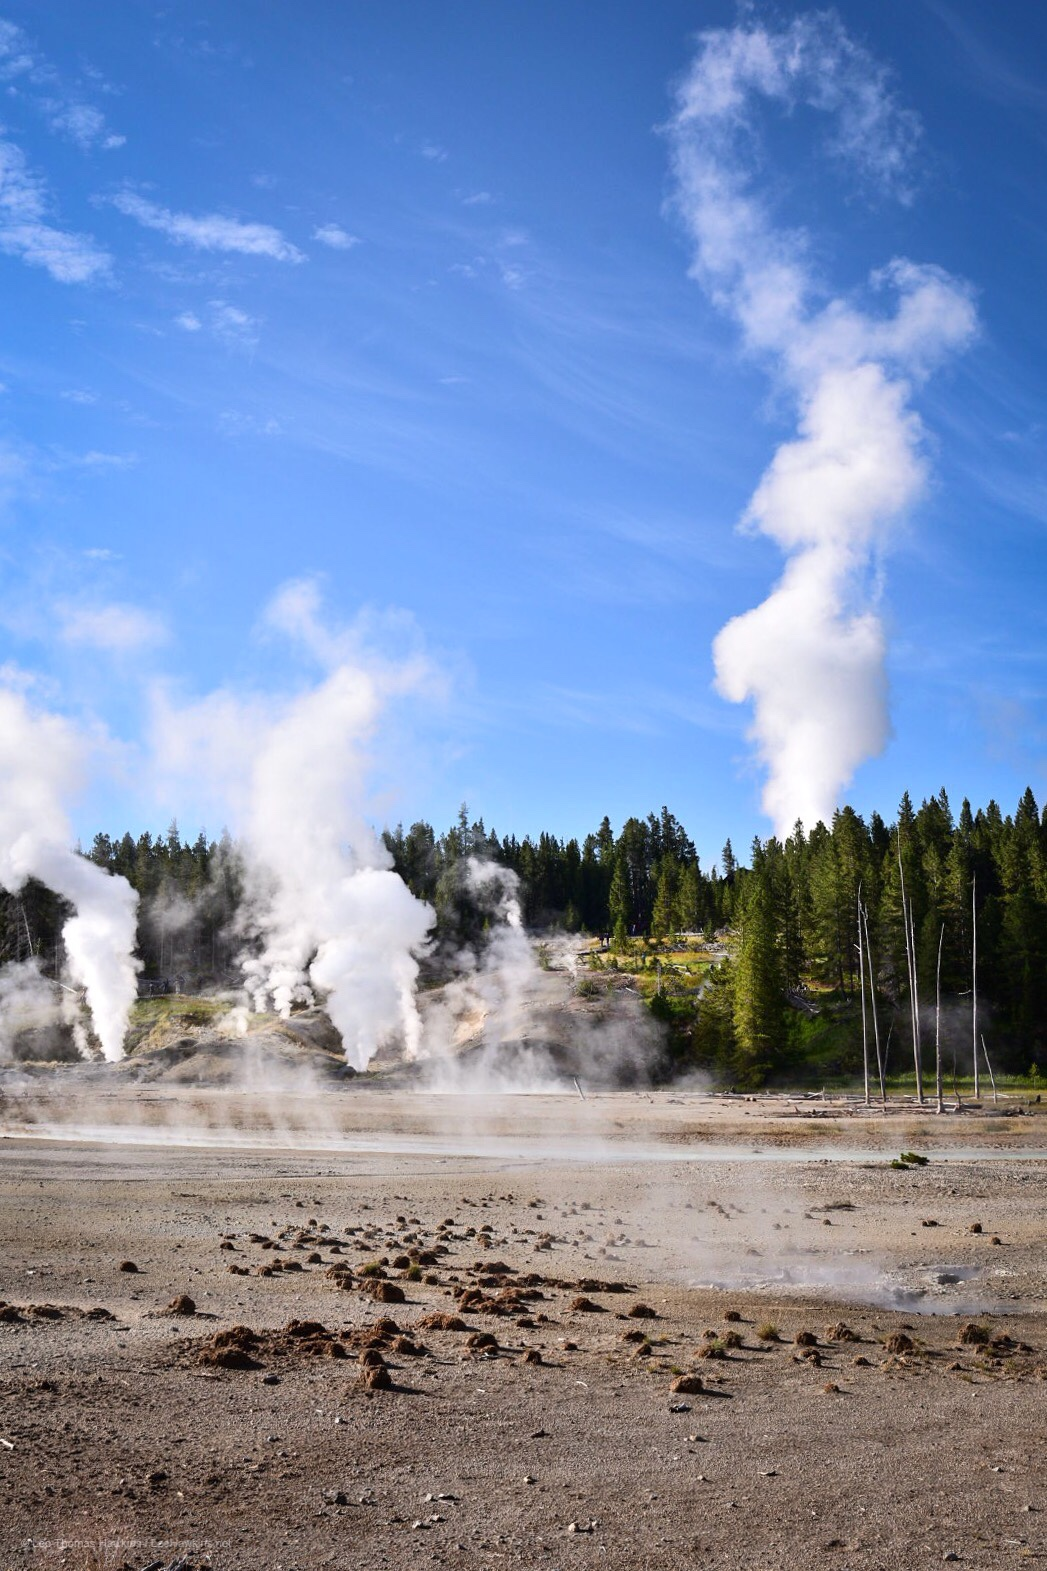 Fumaroles and geysers emit steam plumes in a grey landscape against a picturesque evergreen mountain background.